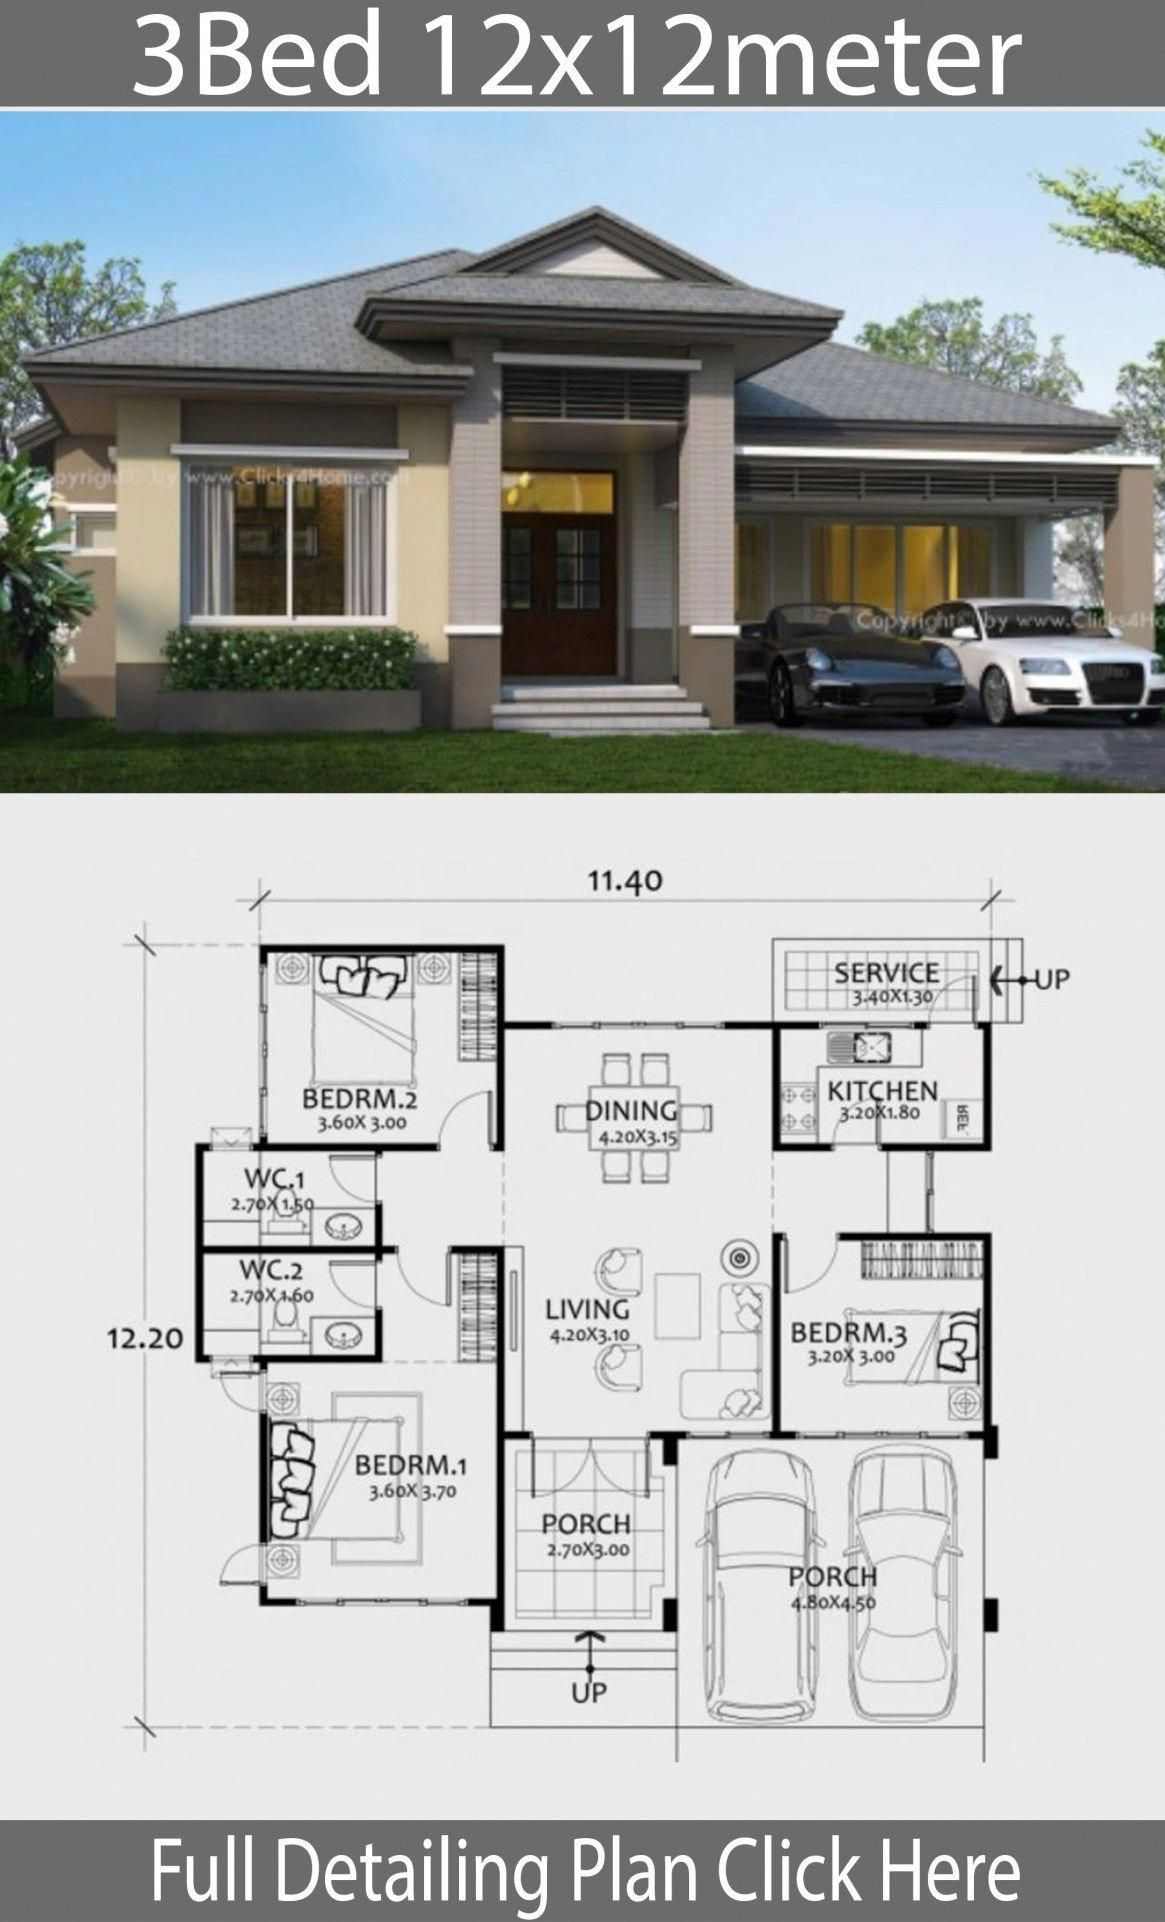 Home Design Plan 12x12m With 3 Bedrooms Home Design With